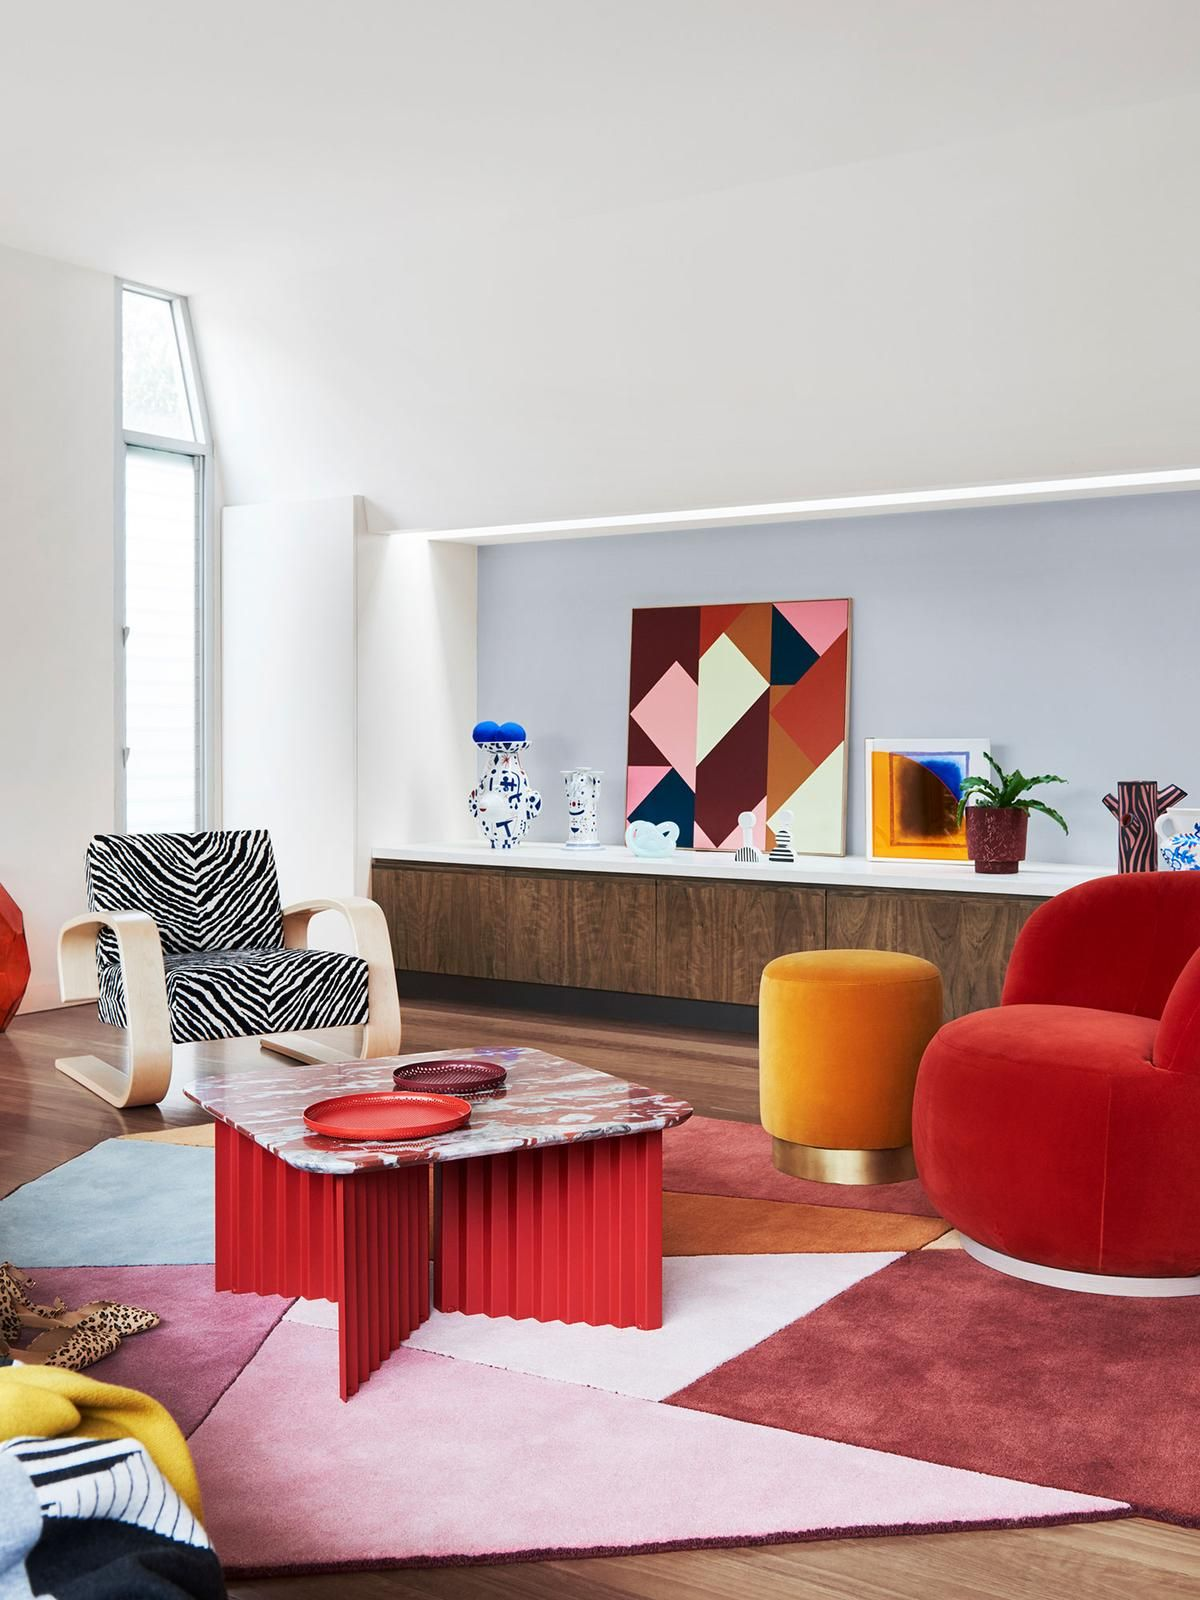 Top 4 Australian interior design trends for 2019 in 2020